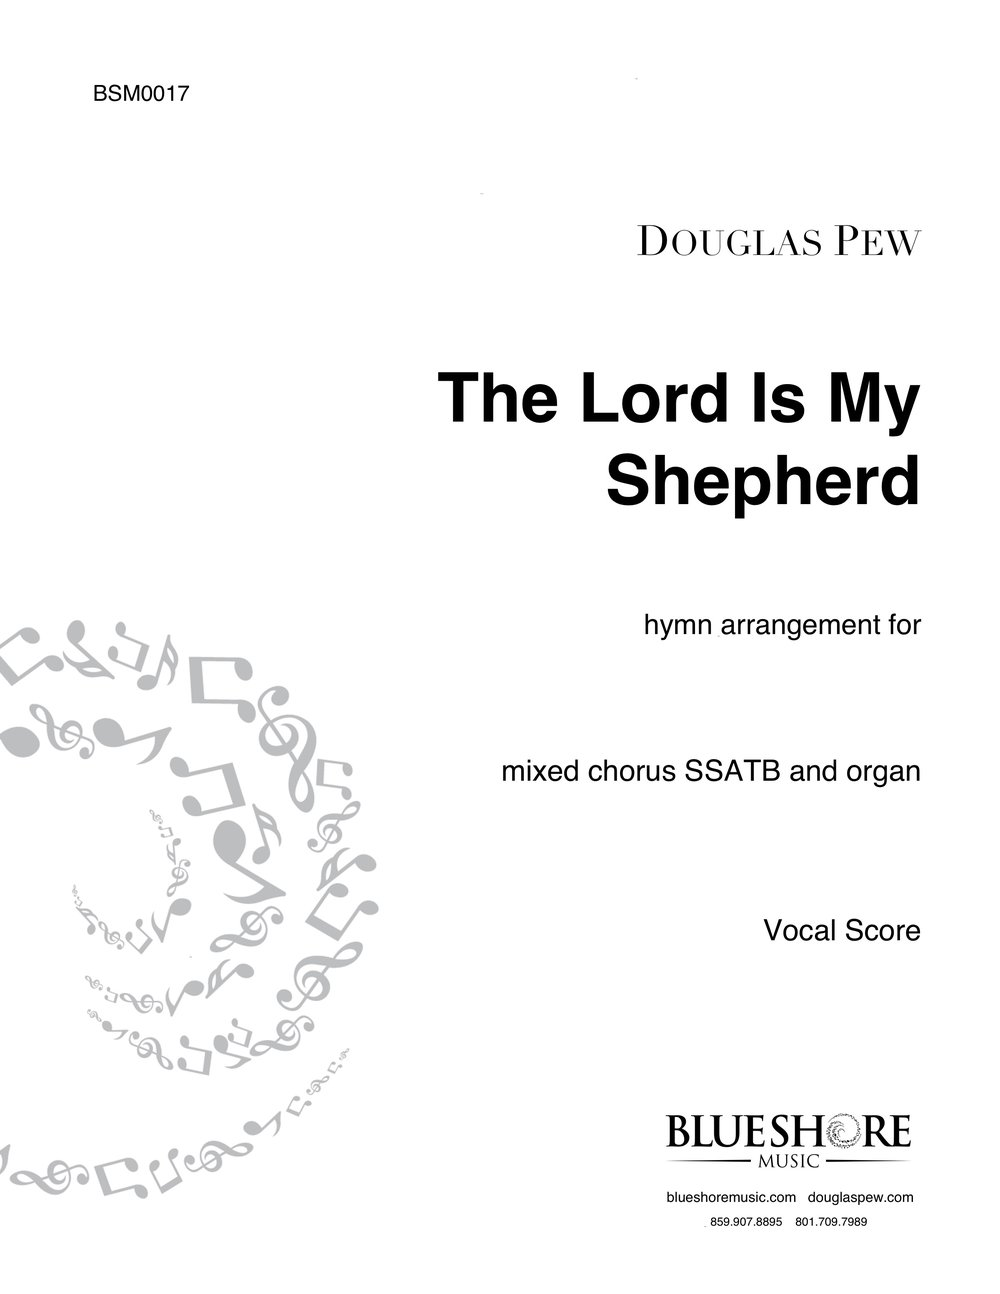 The Lord Is My Shepherd  , Hymn Arrangement for SSATB and Organ